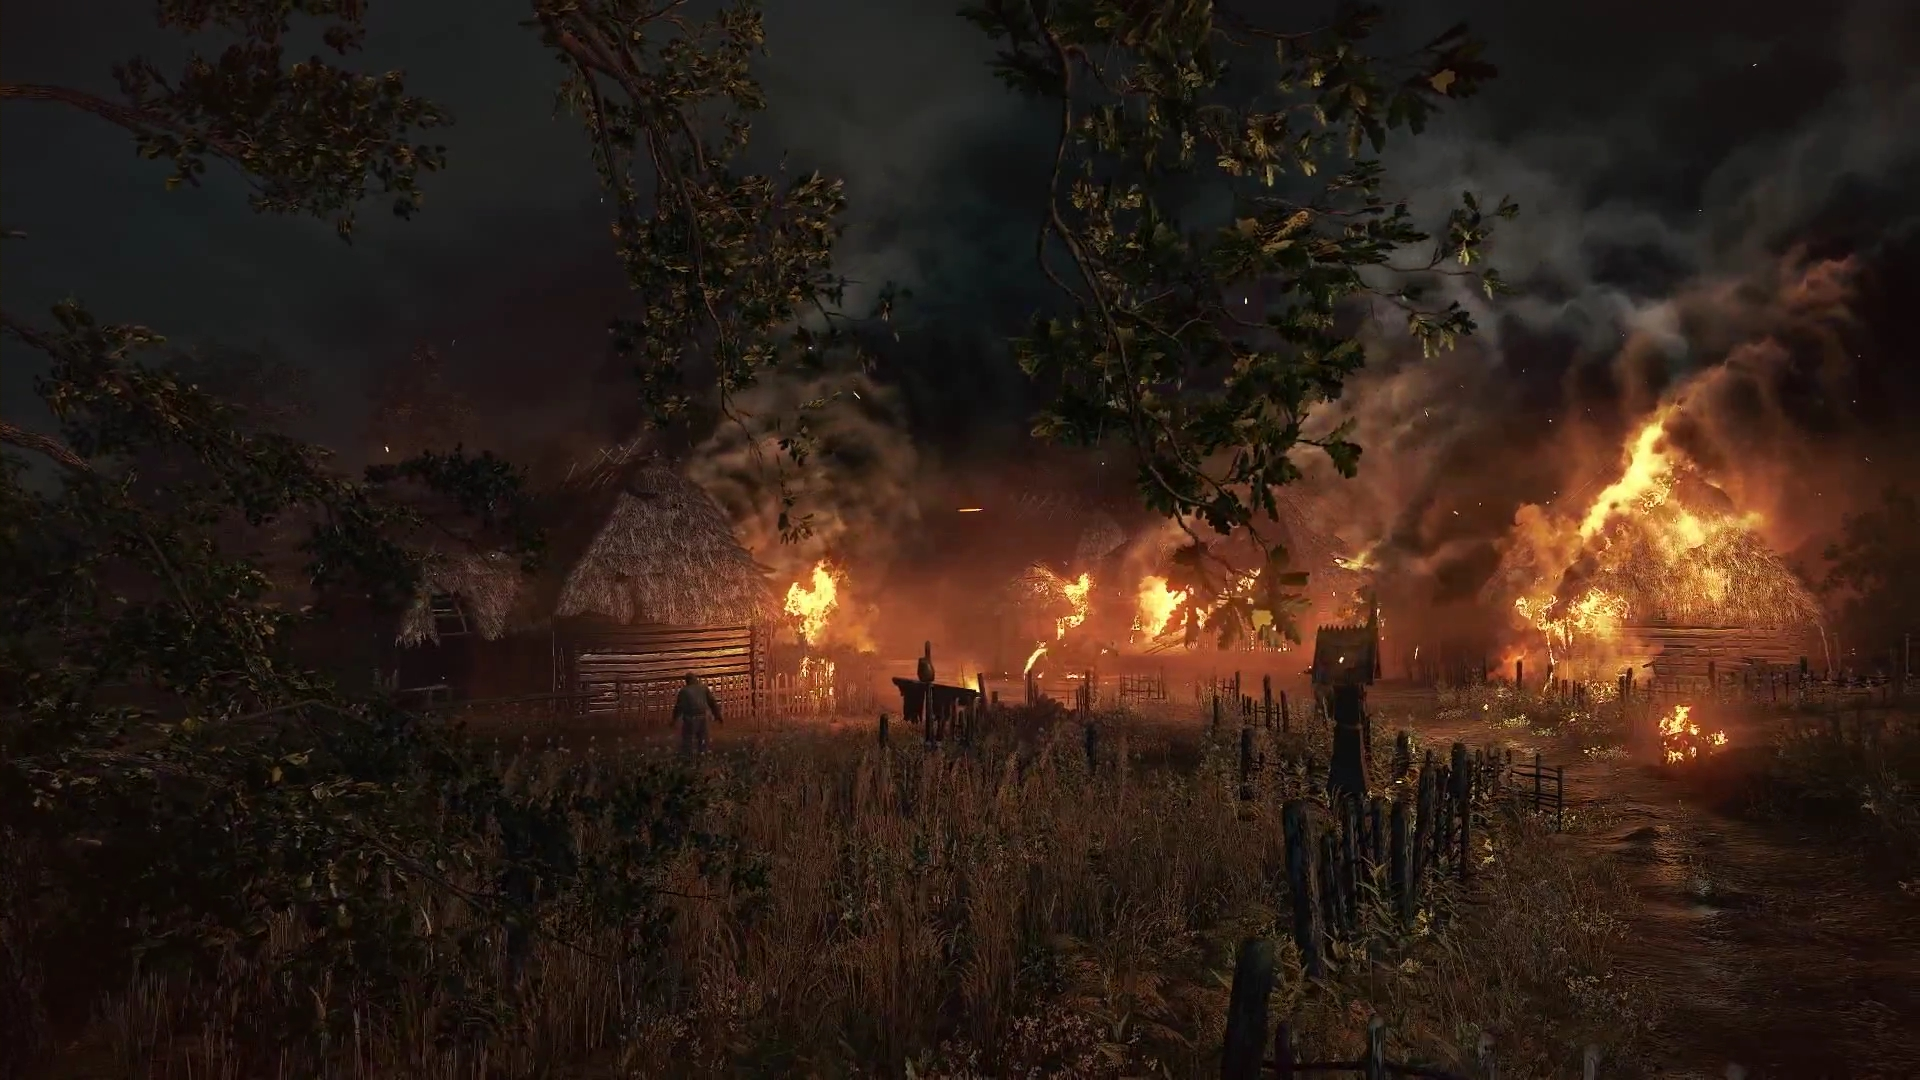 burning-village-game-the-witcher-3-wild-hunt-1920x1080.jpg